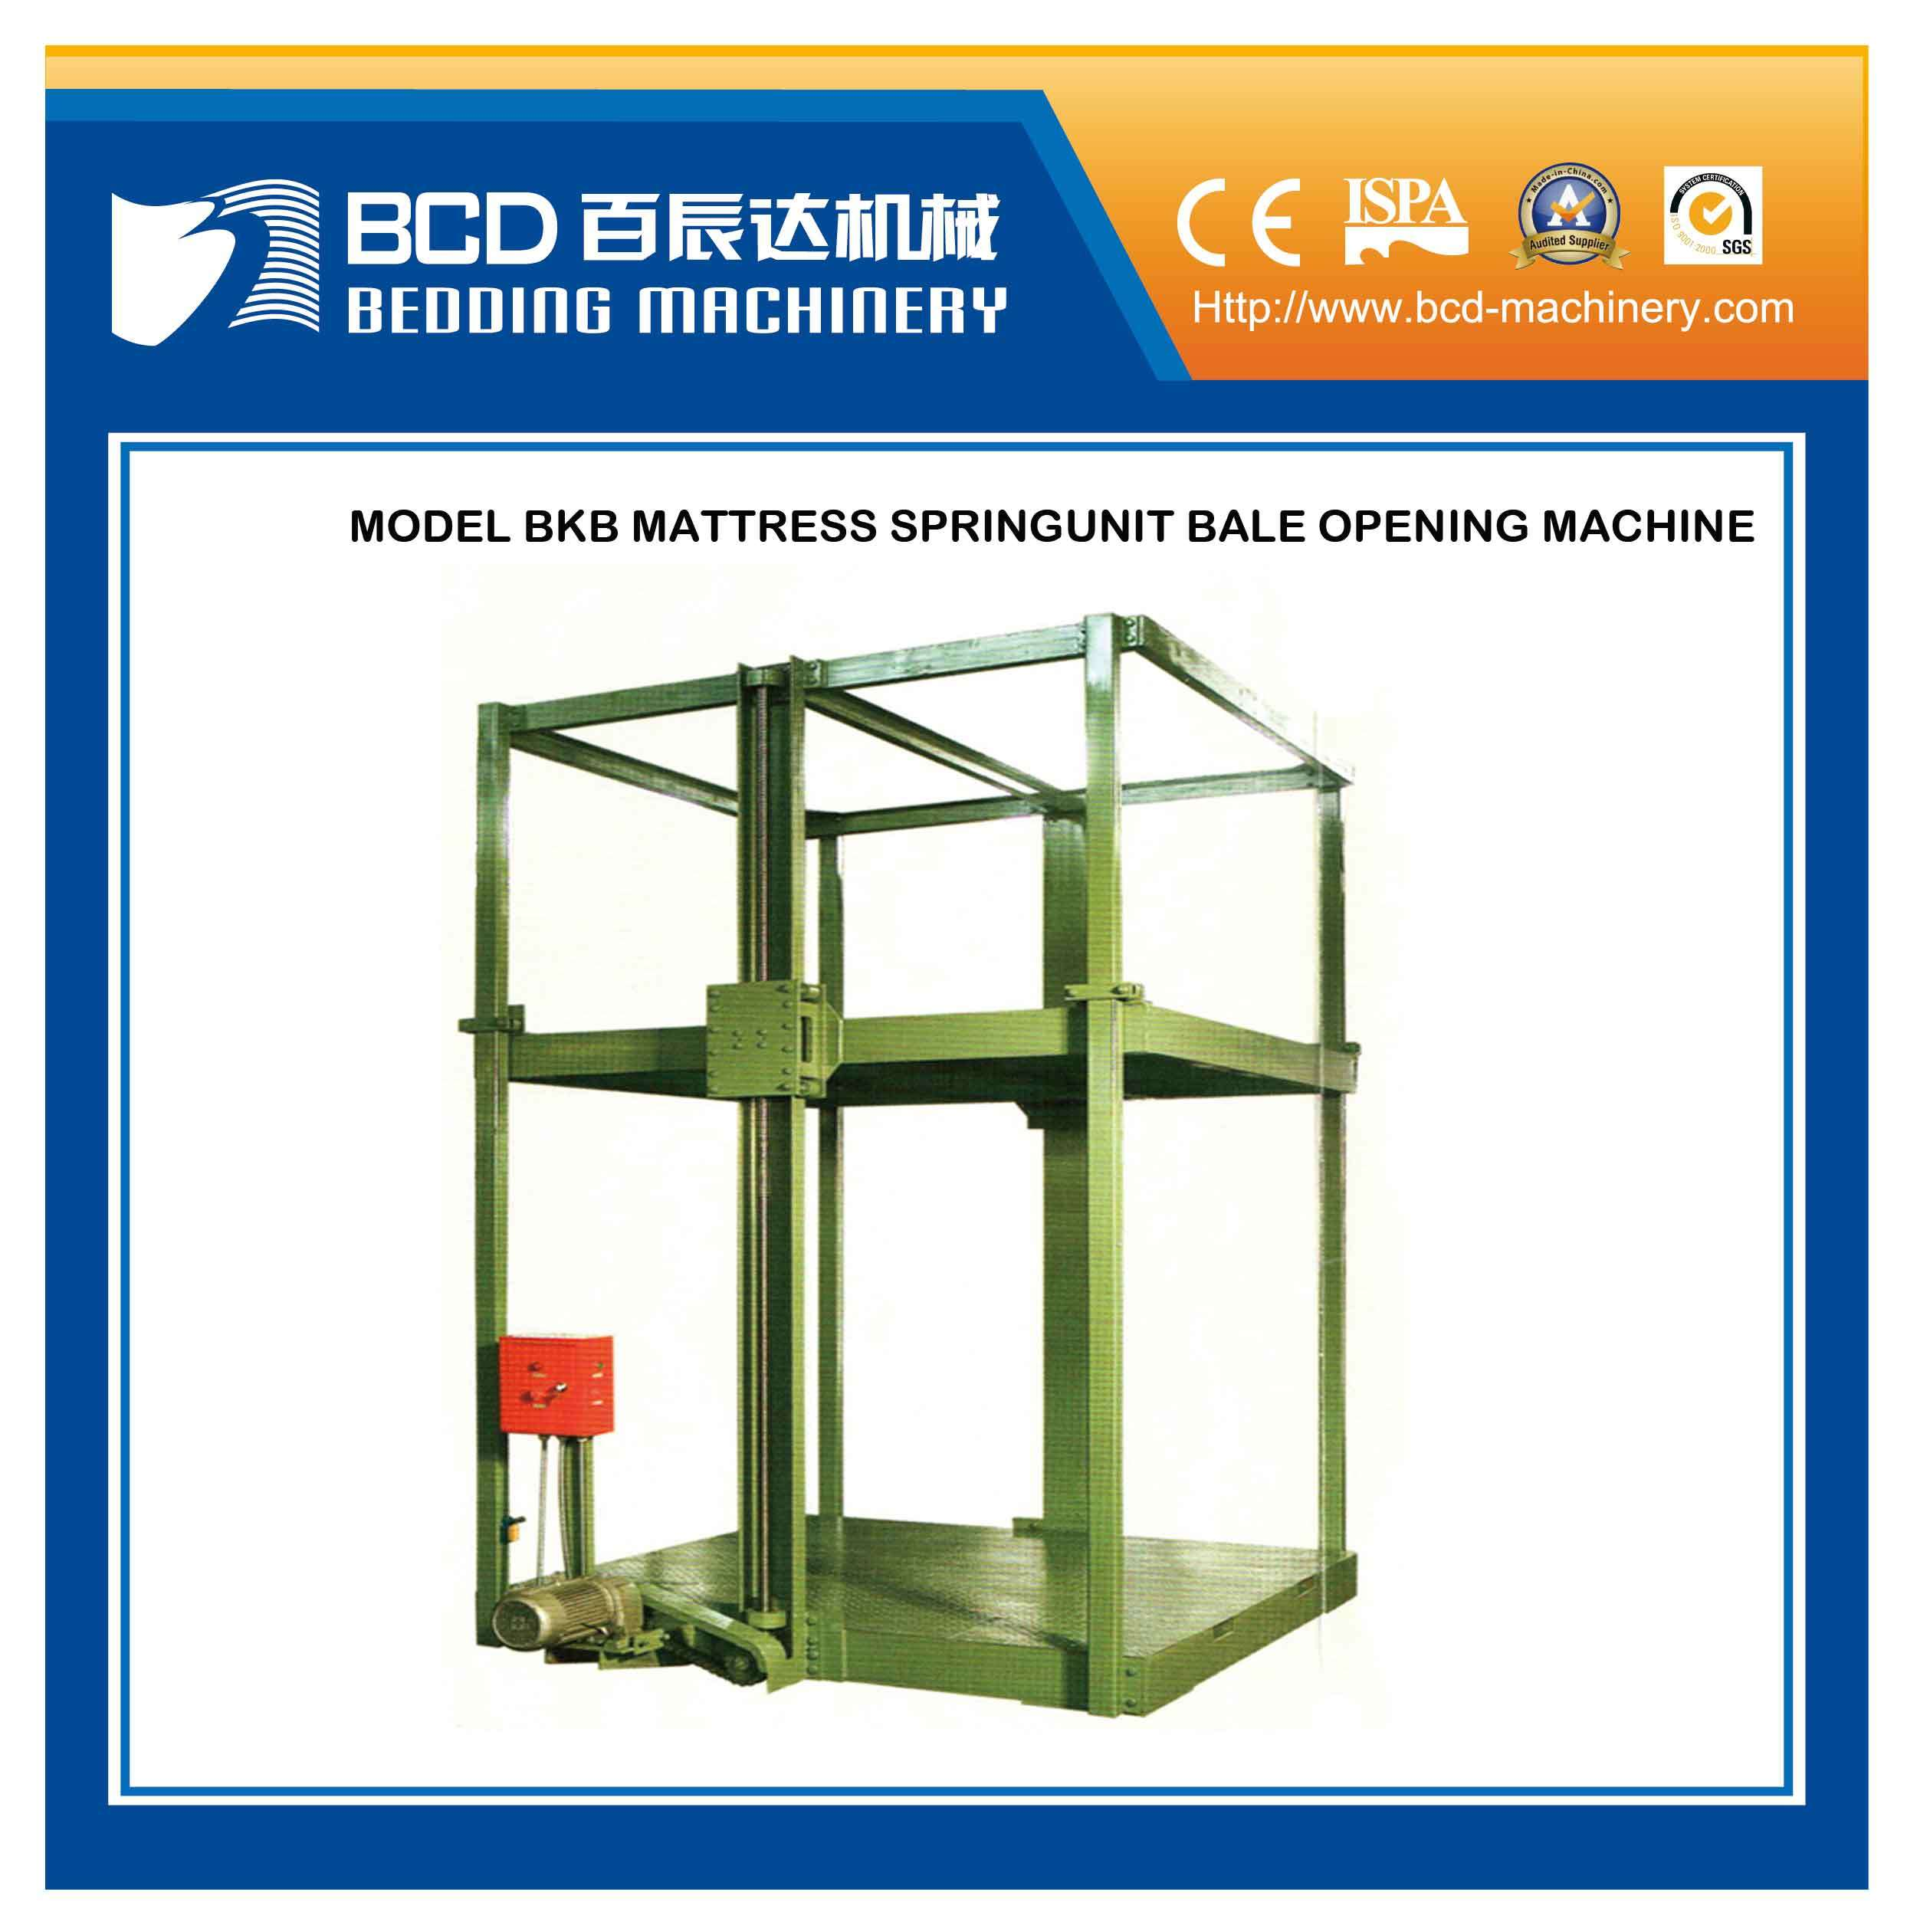 Spring Unit Bale Opening Machine (BKB)